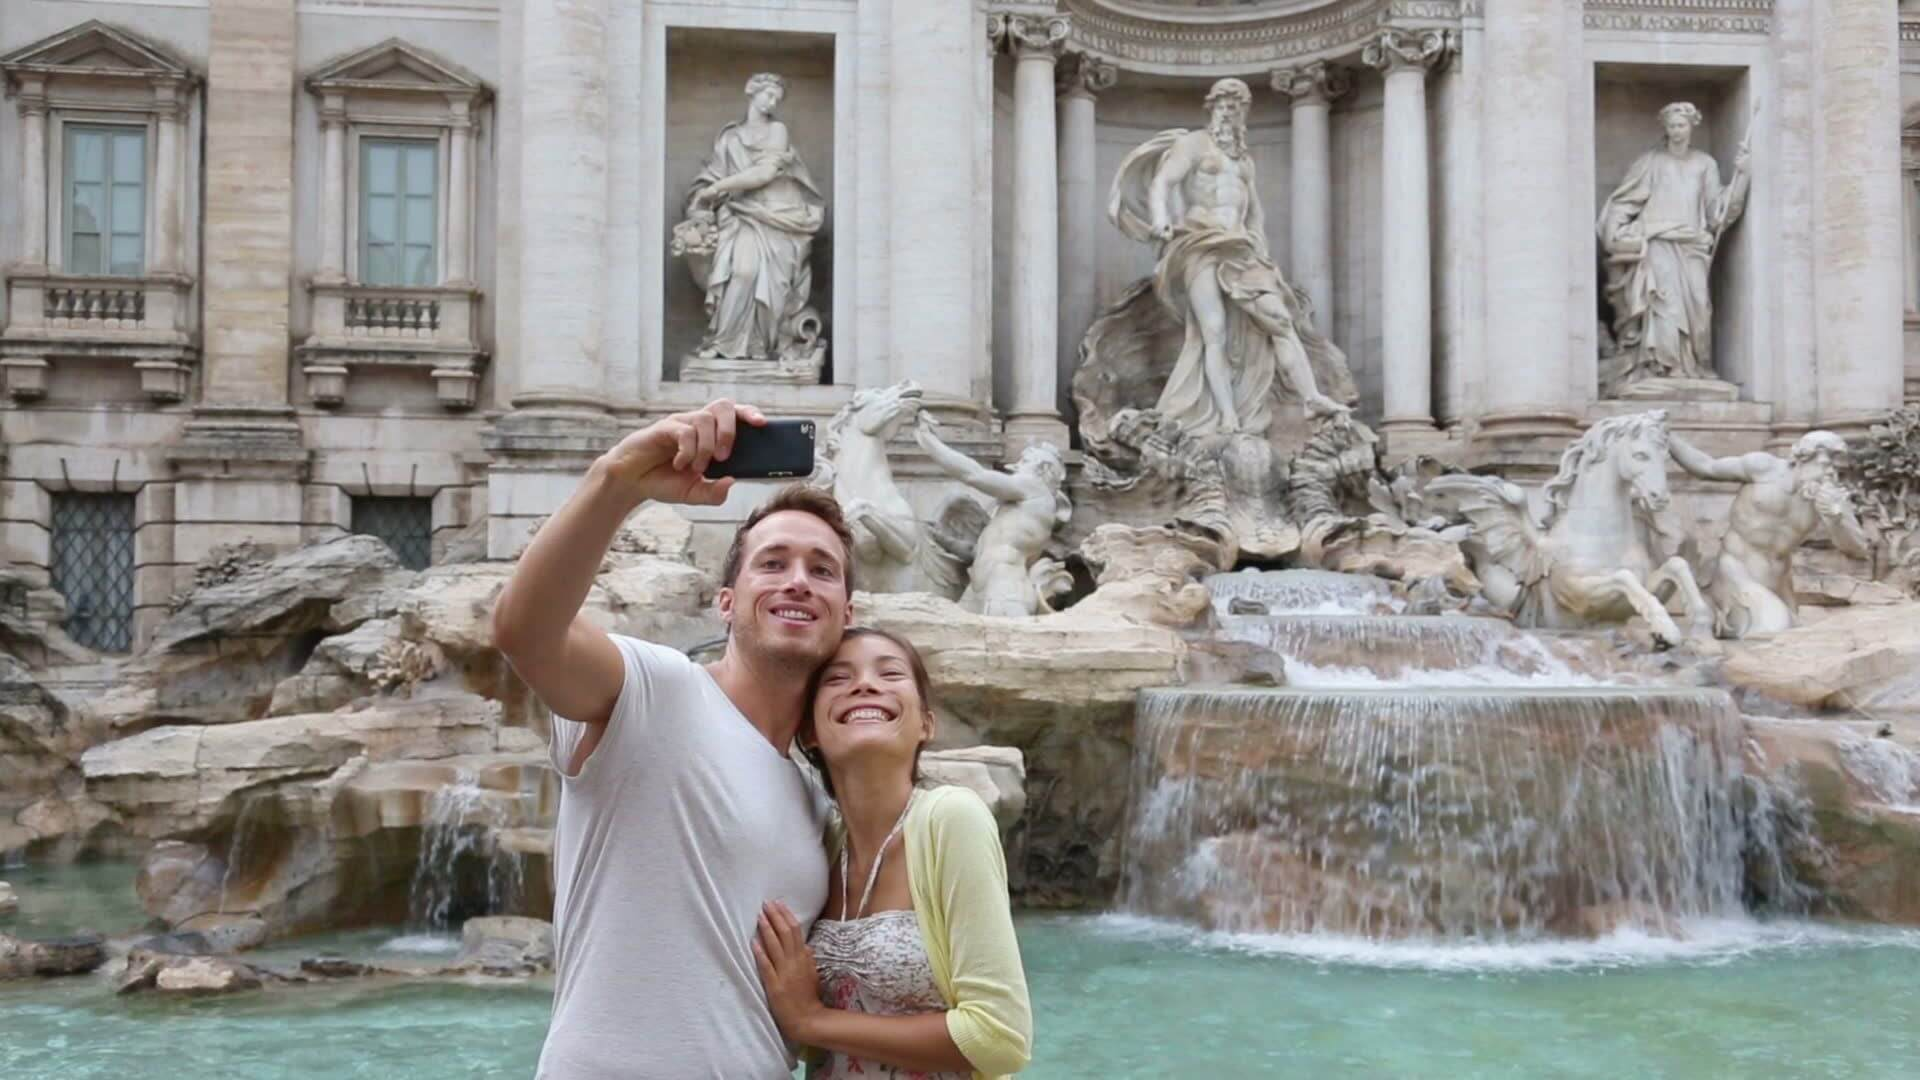 The eternal city of Rome ranks #1 on the selfie list